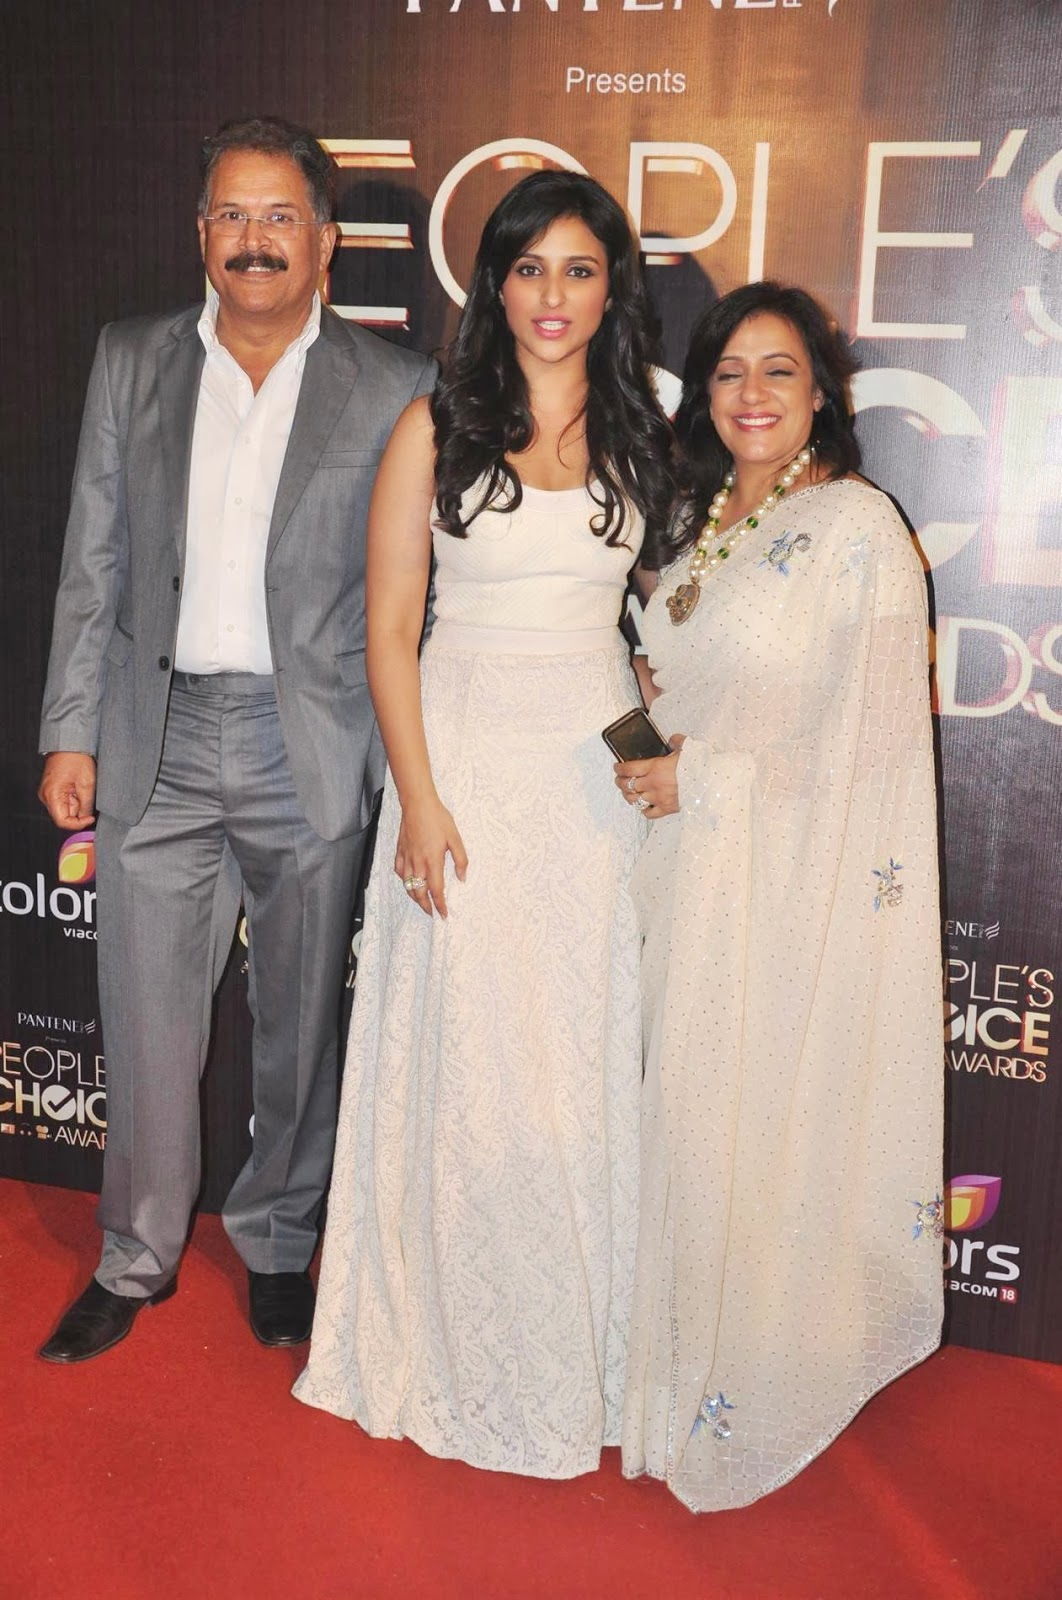 Parineeti Chopra with her father and mother